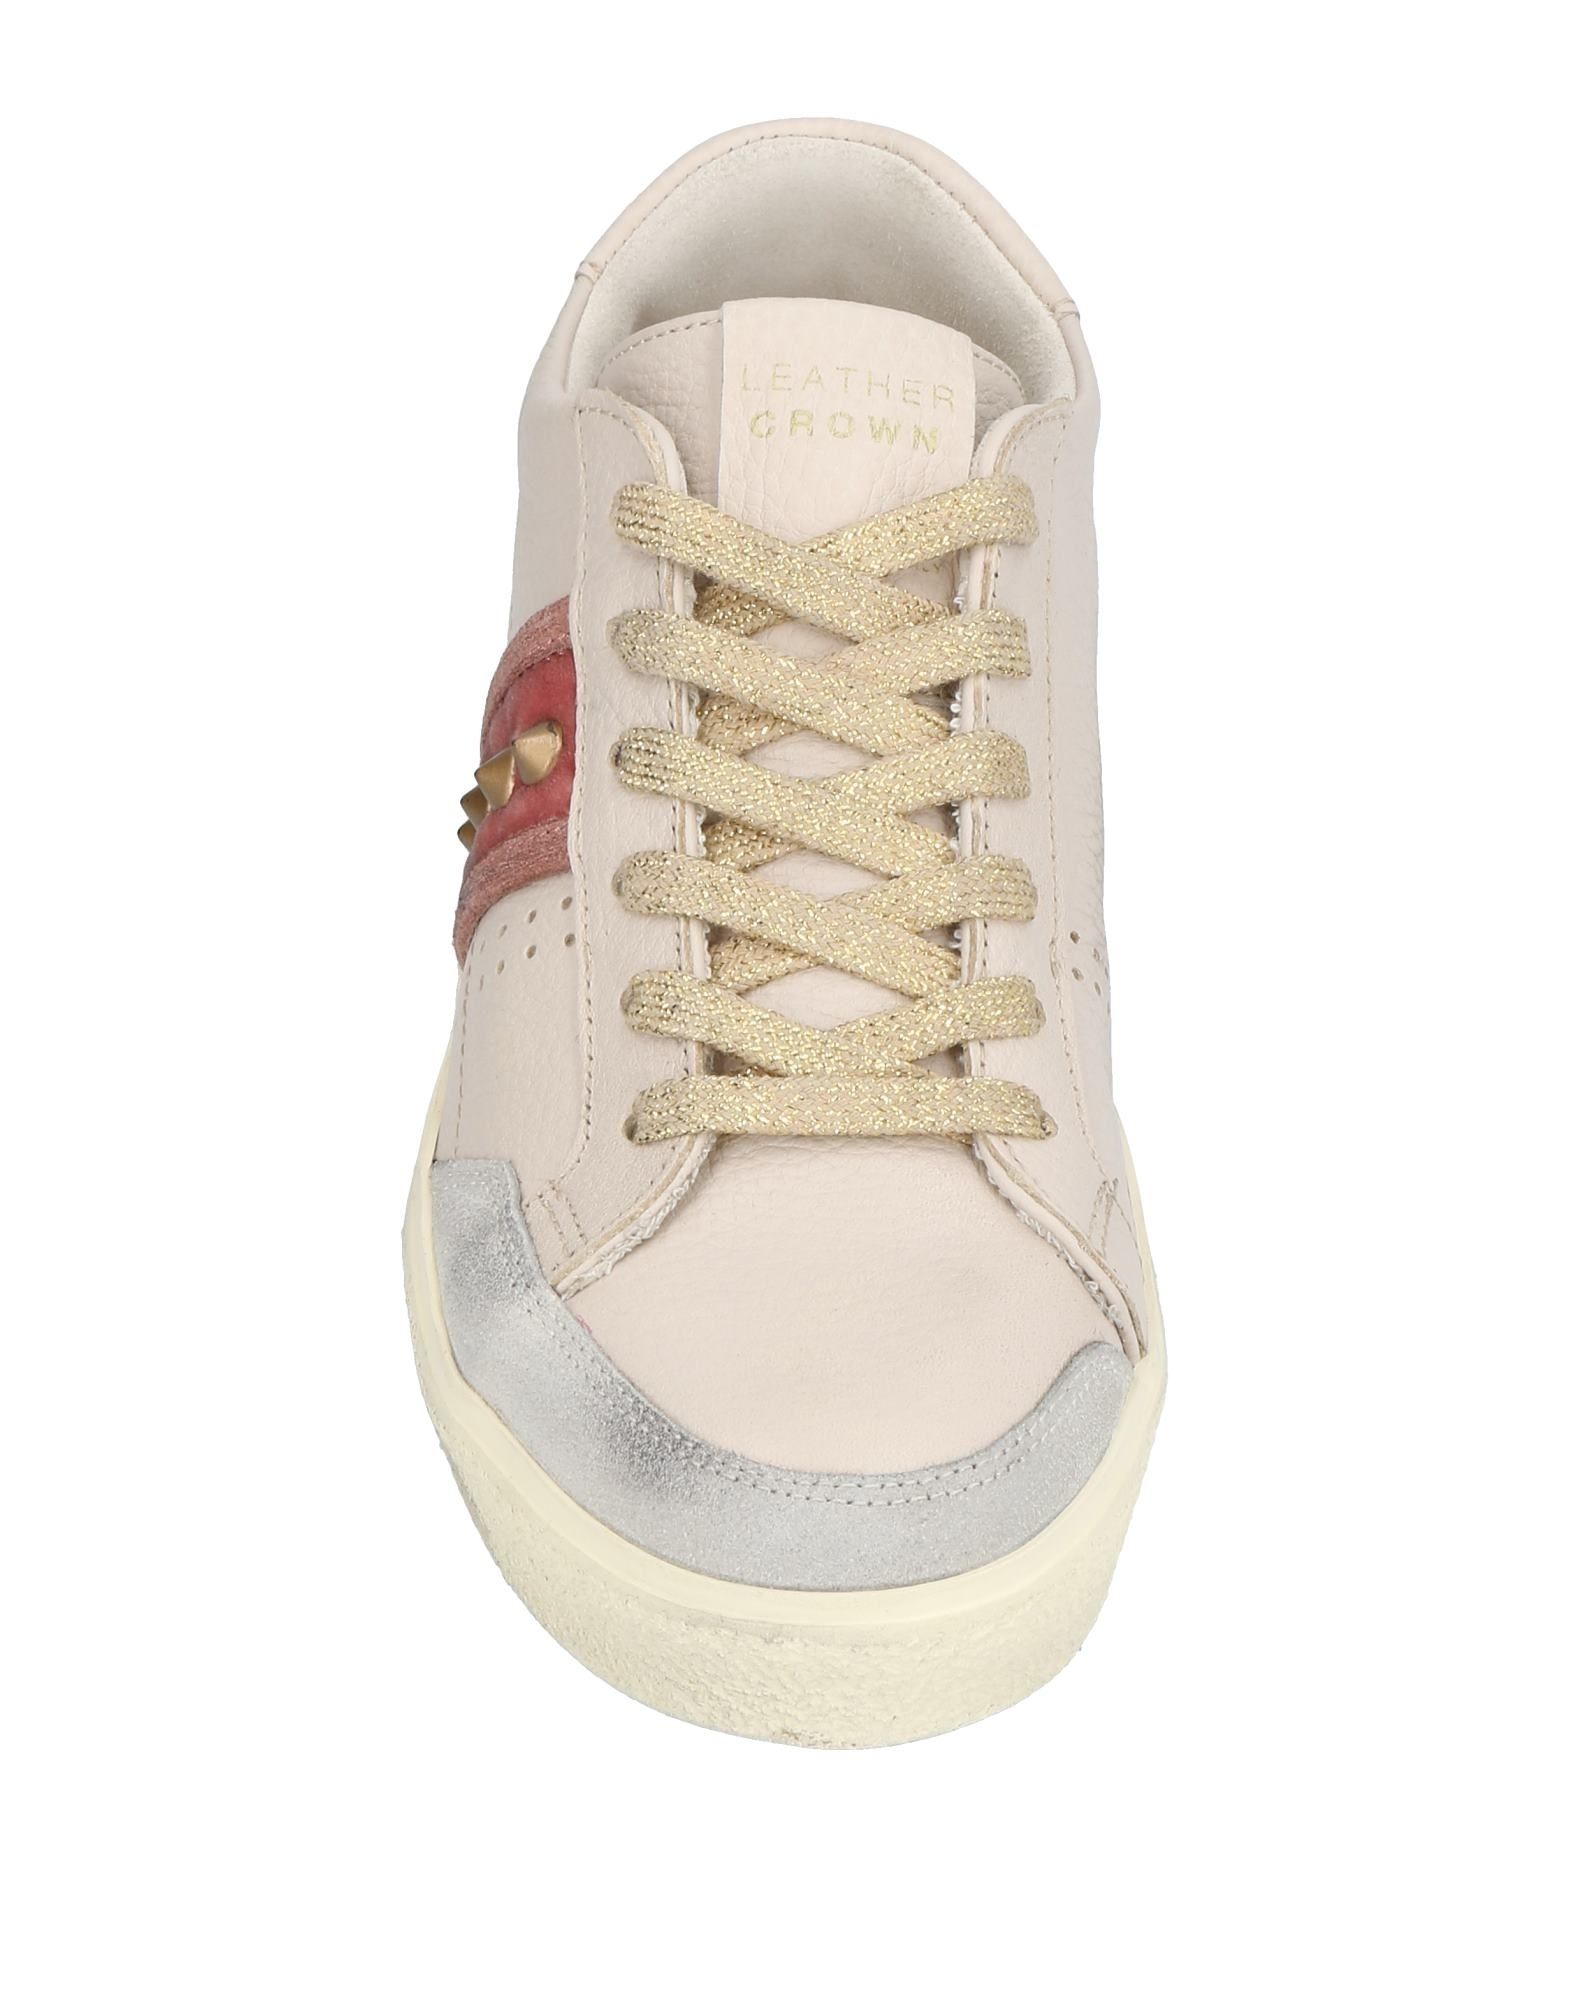 Leather Crown Sneakers - - - Women Leather Crown Sneakers online on  Canada - 11453557UQ f37fd7